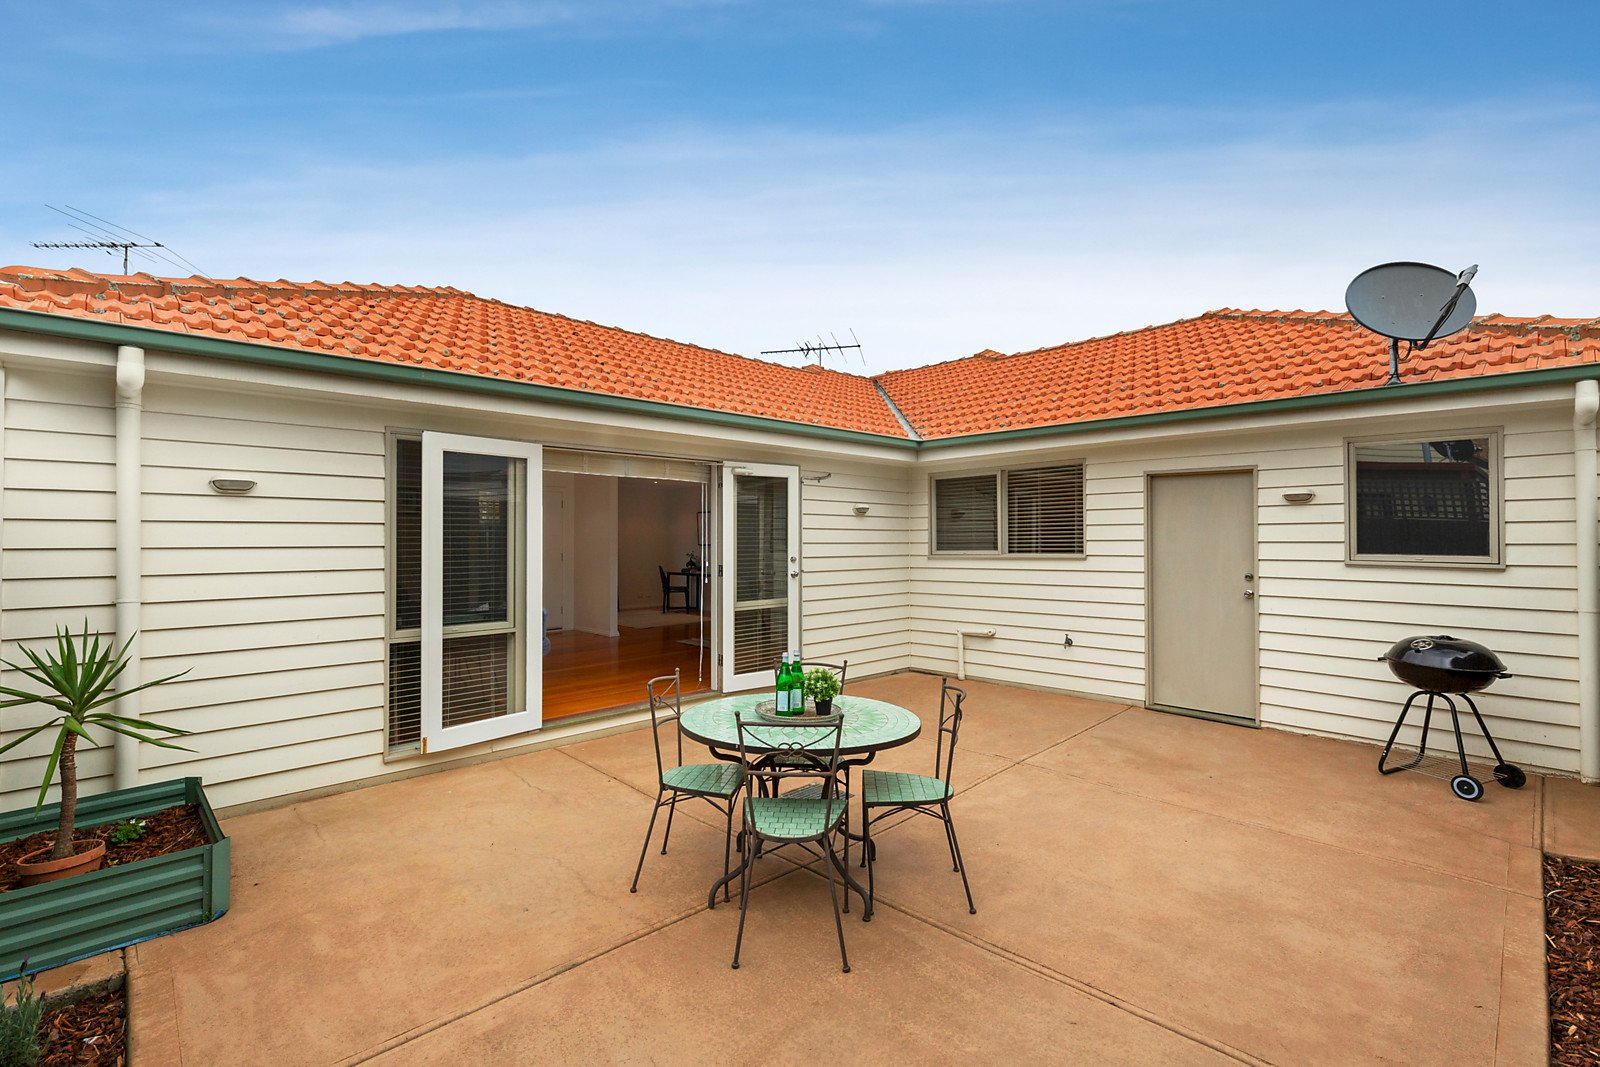 78A Epsom Road, Ascot Vale, VIC, 3032 image 10